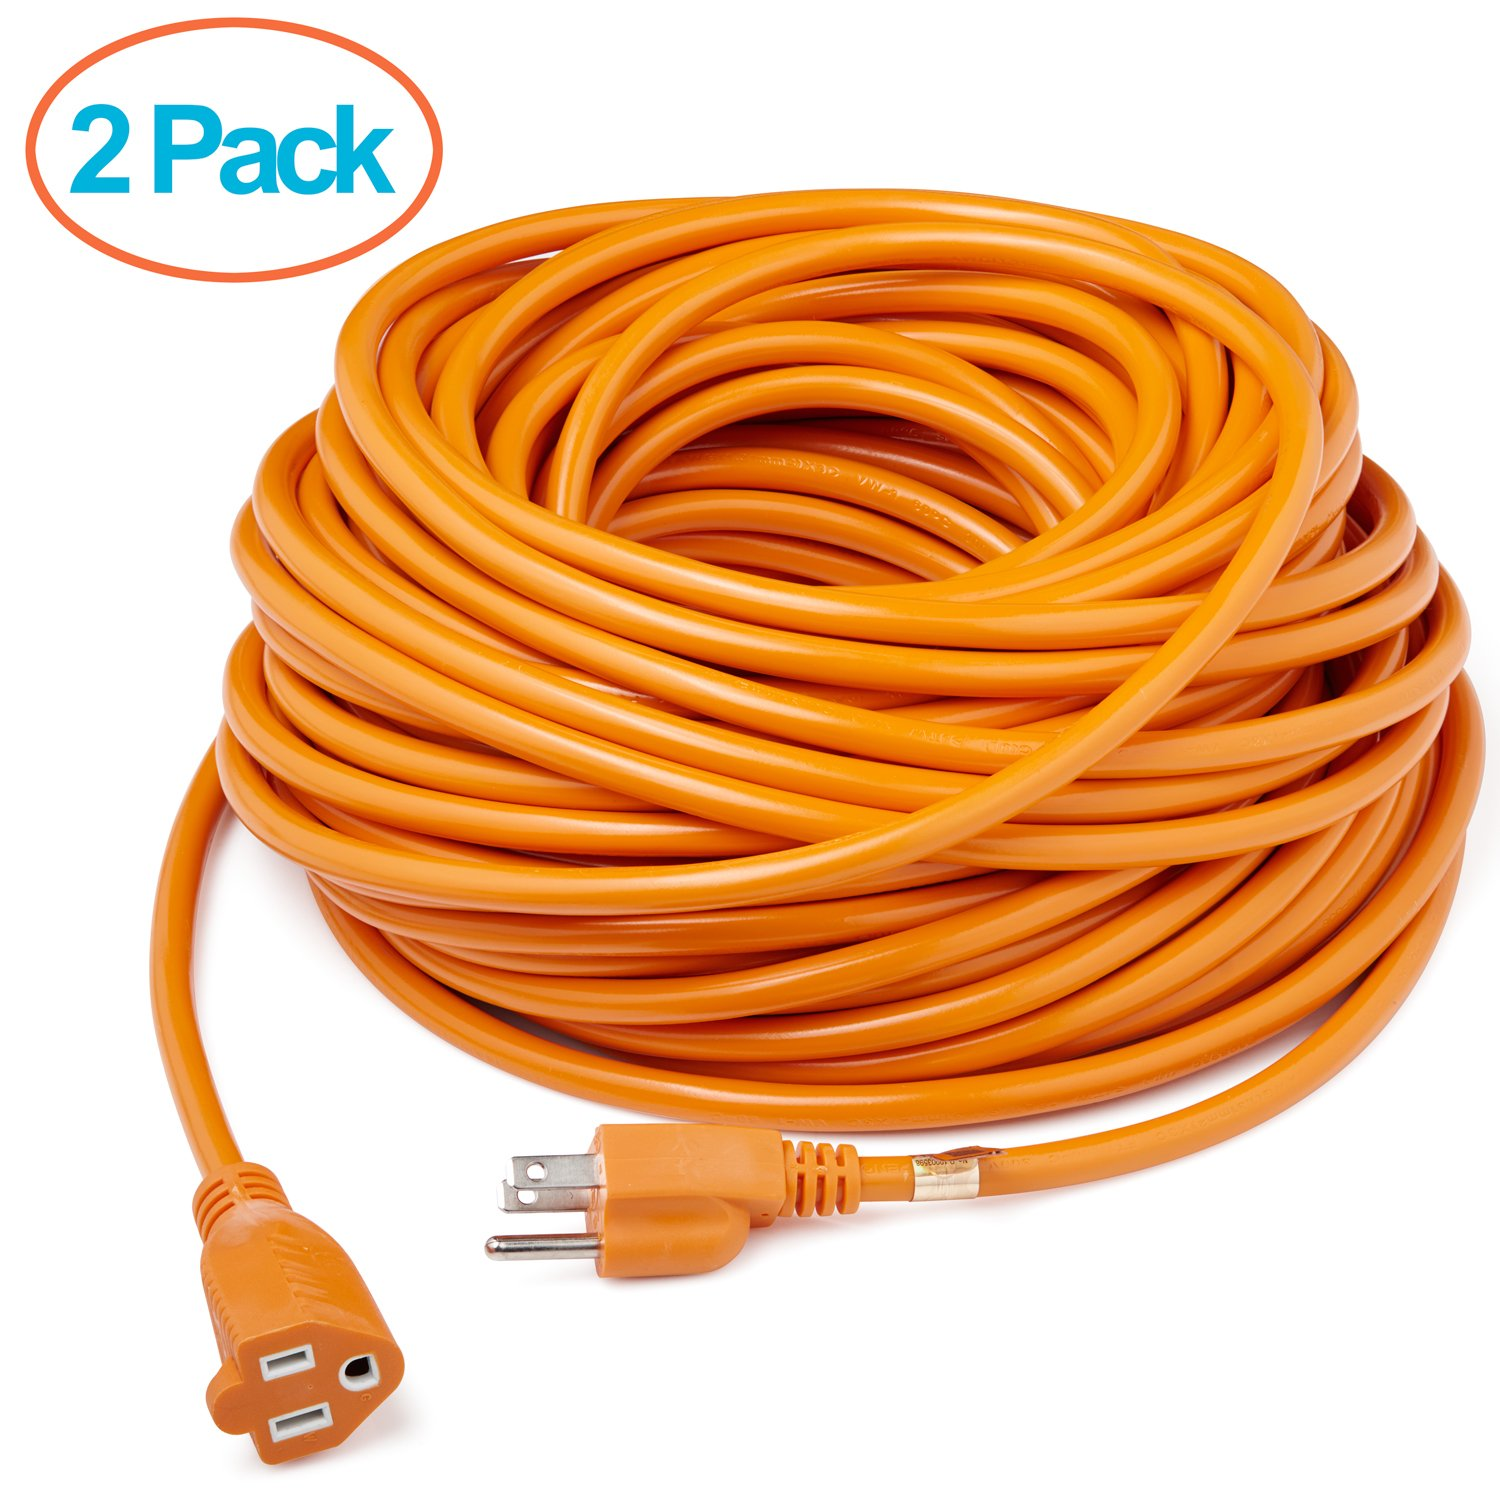 ClearMax 50' 16/3 Heavy Duty Vinyl Outdoor Extension Cord with 3 Prong Grounded Plug - UL Approved - 16 AWG - 50 Feet - Orange - 2 Pack